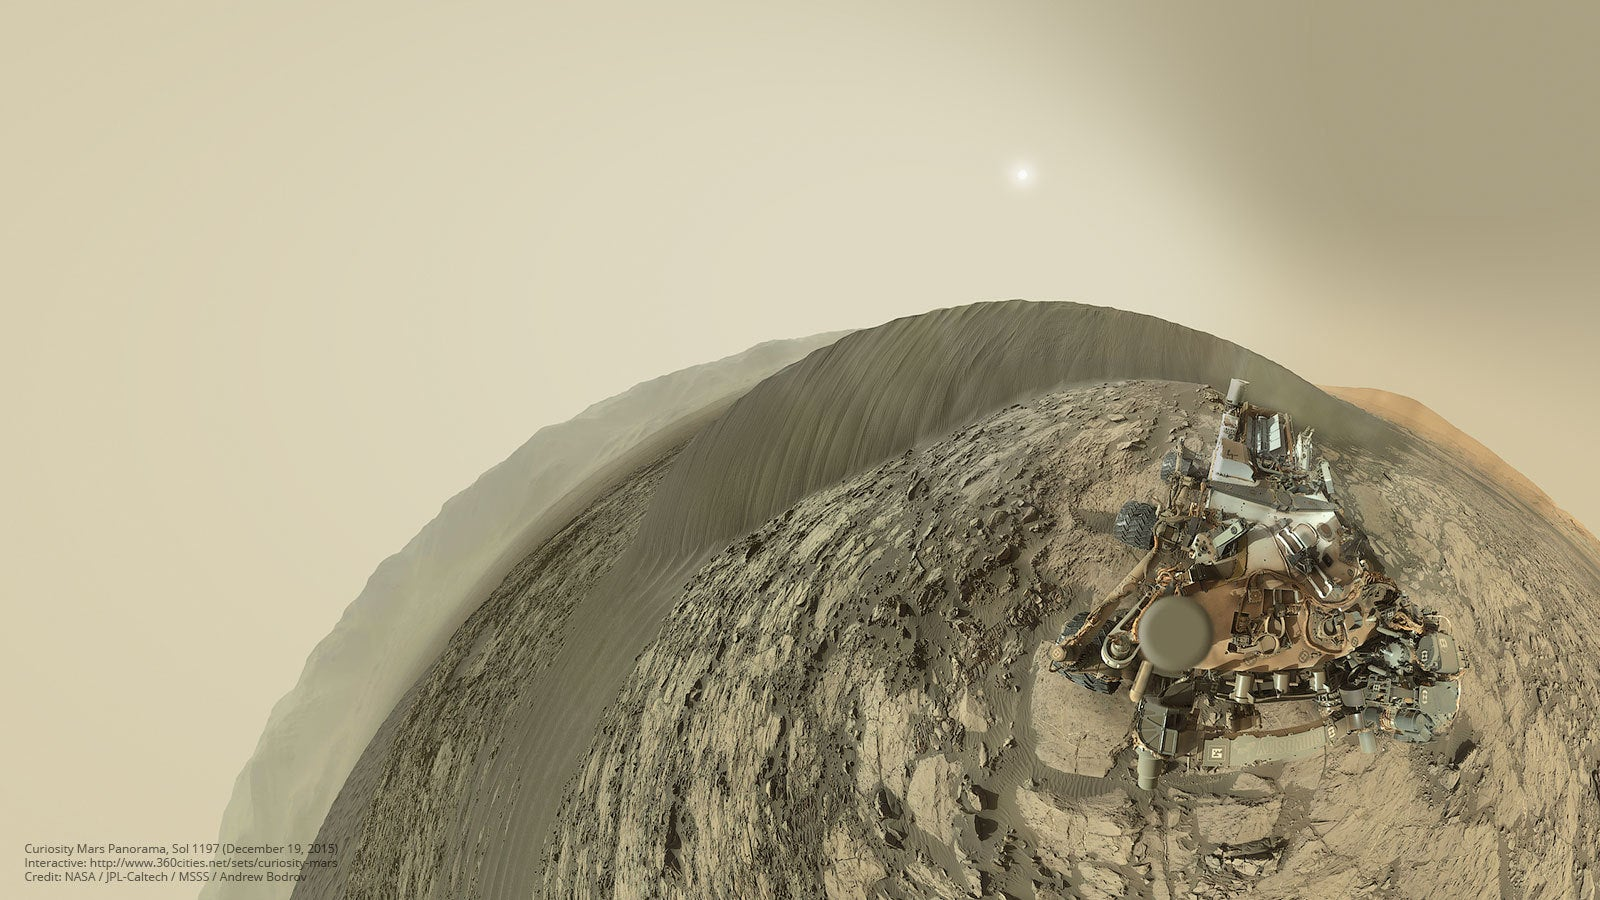 The Mars Curiosity Rover Learned A New Camera Trick